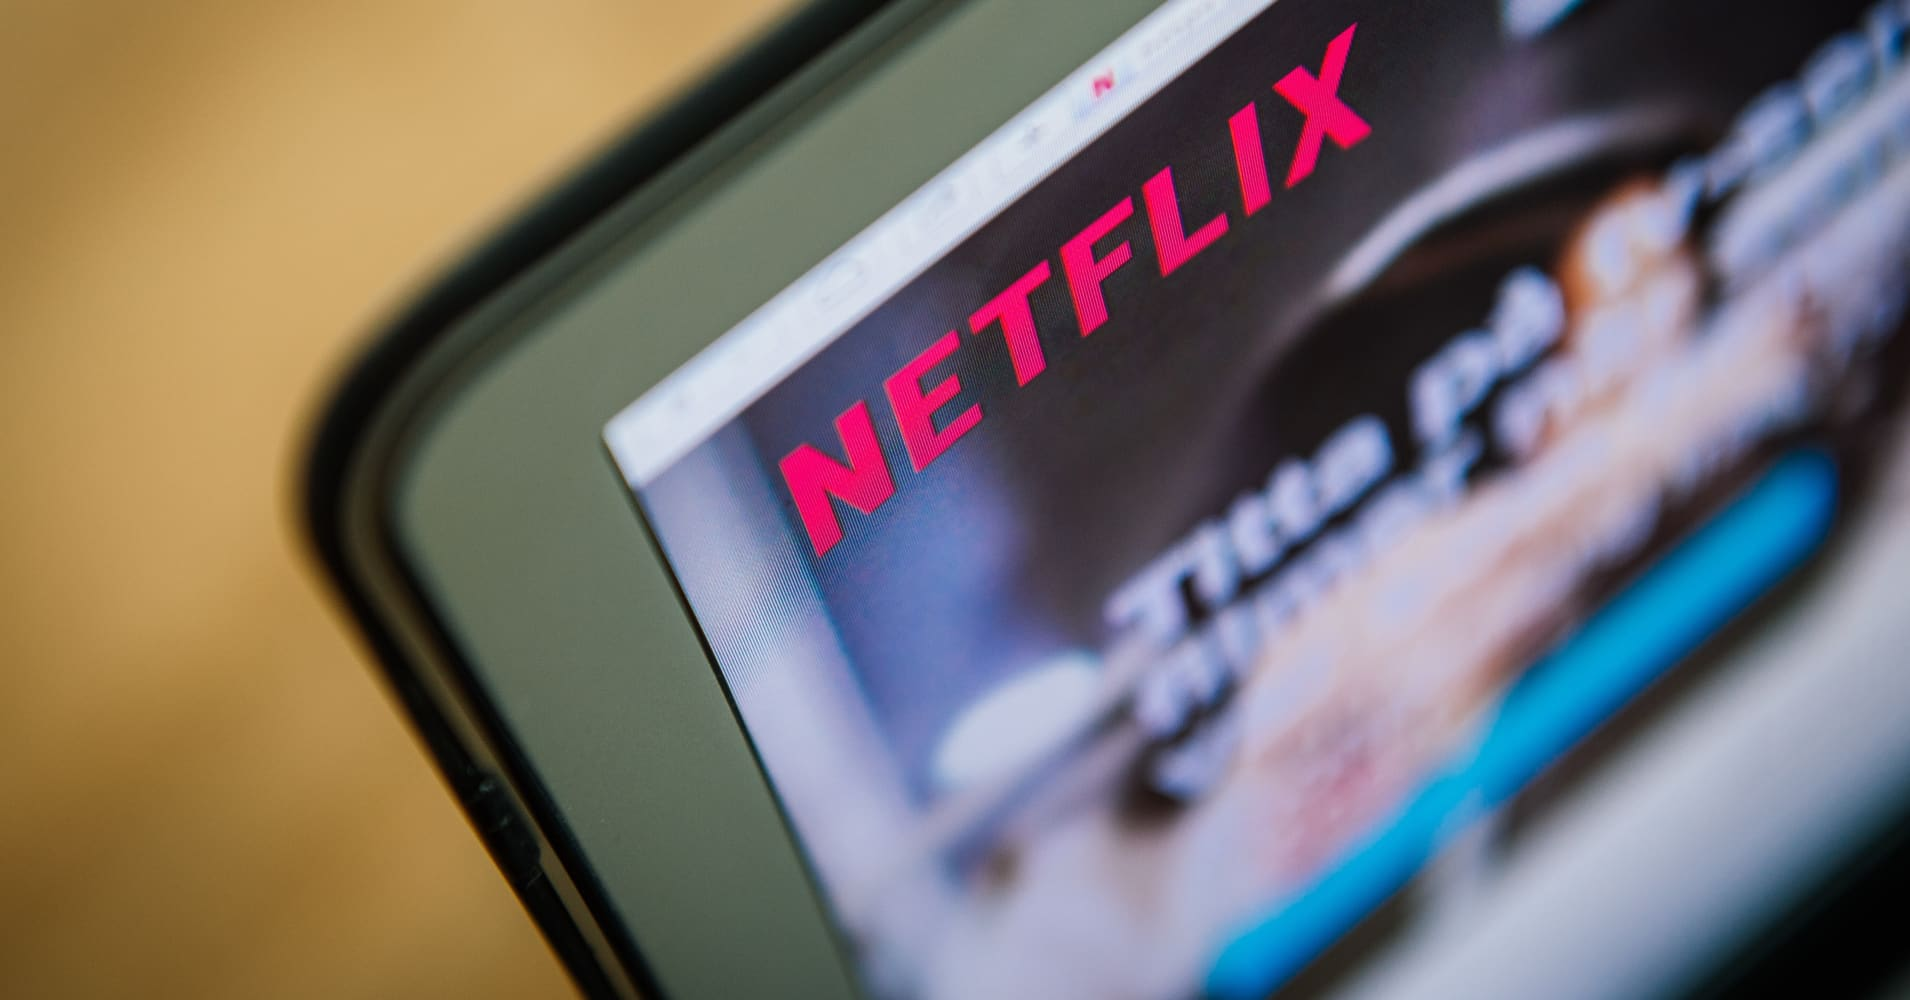 Now is the time to bet on Netflix—and here's how: Trader